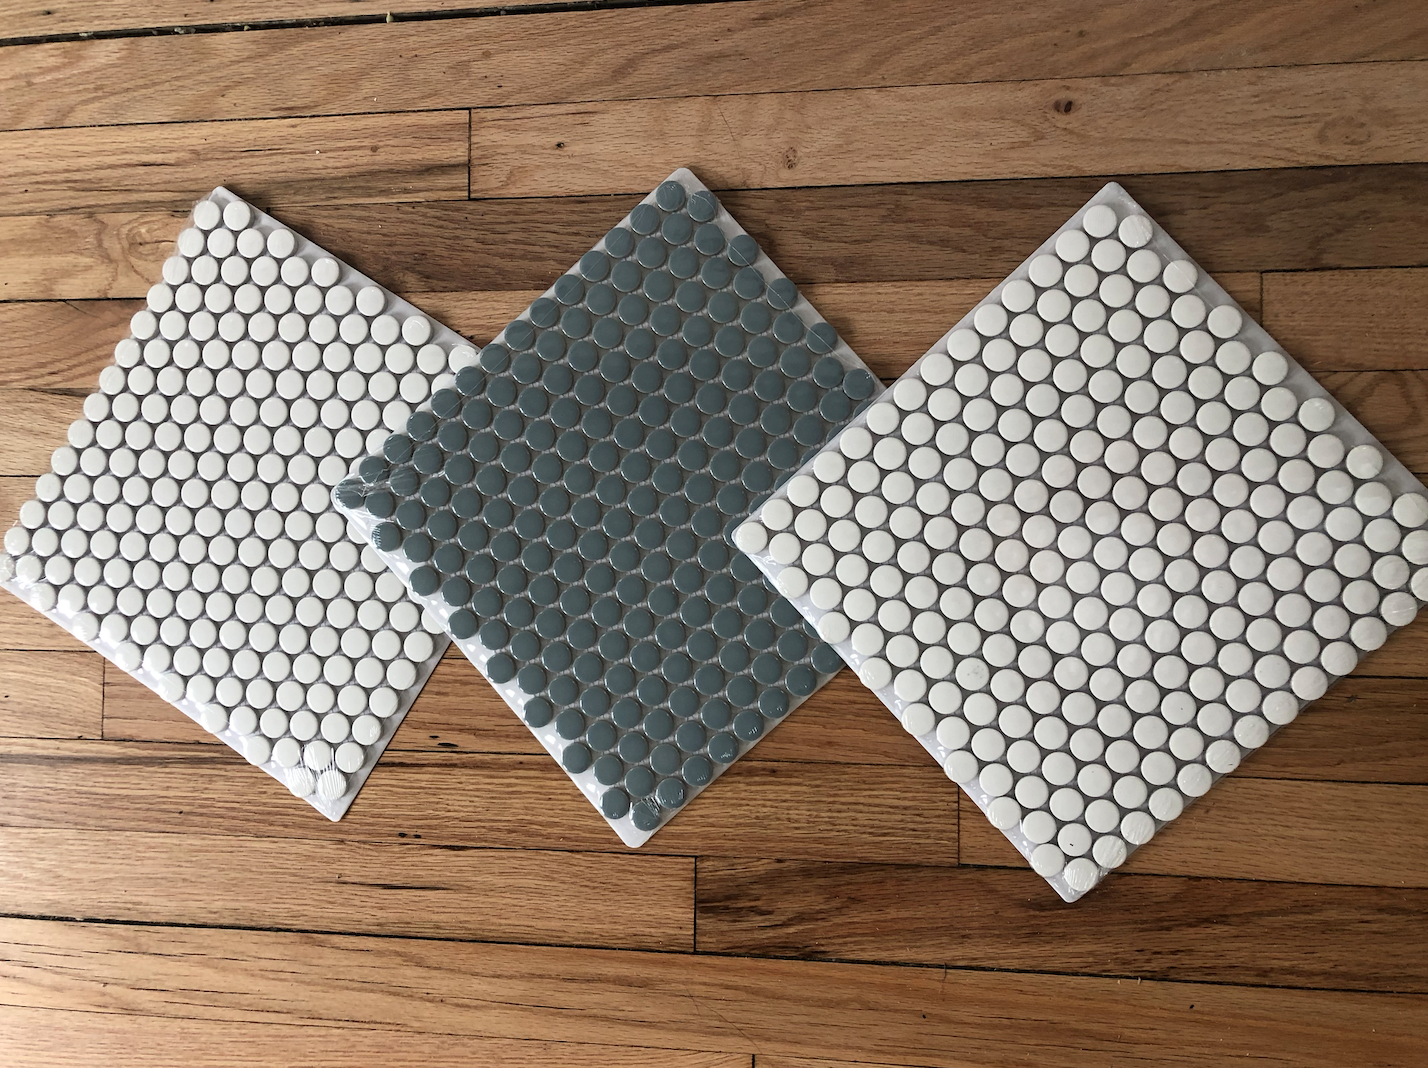 Penny Tile from Home Depot